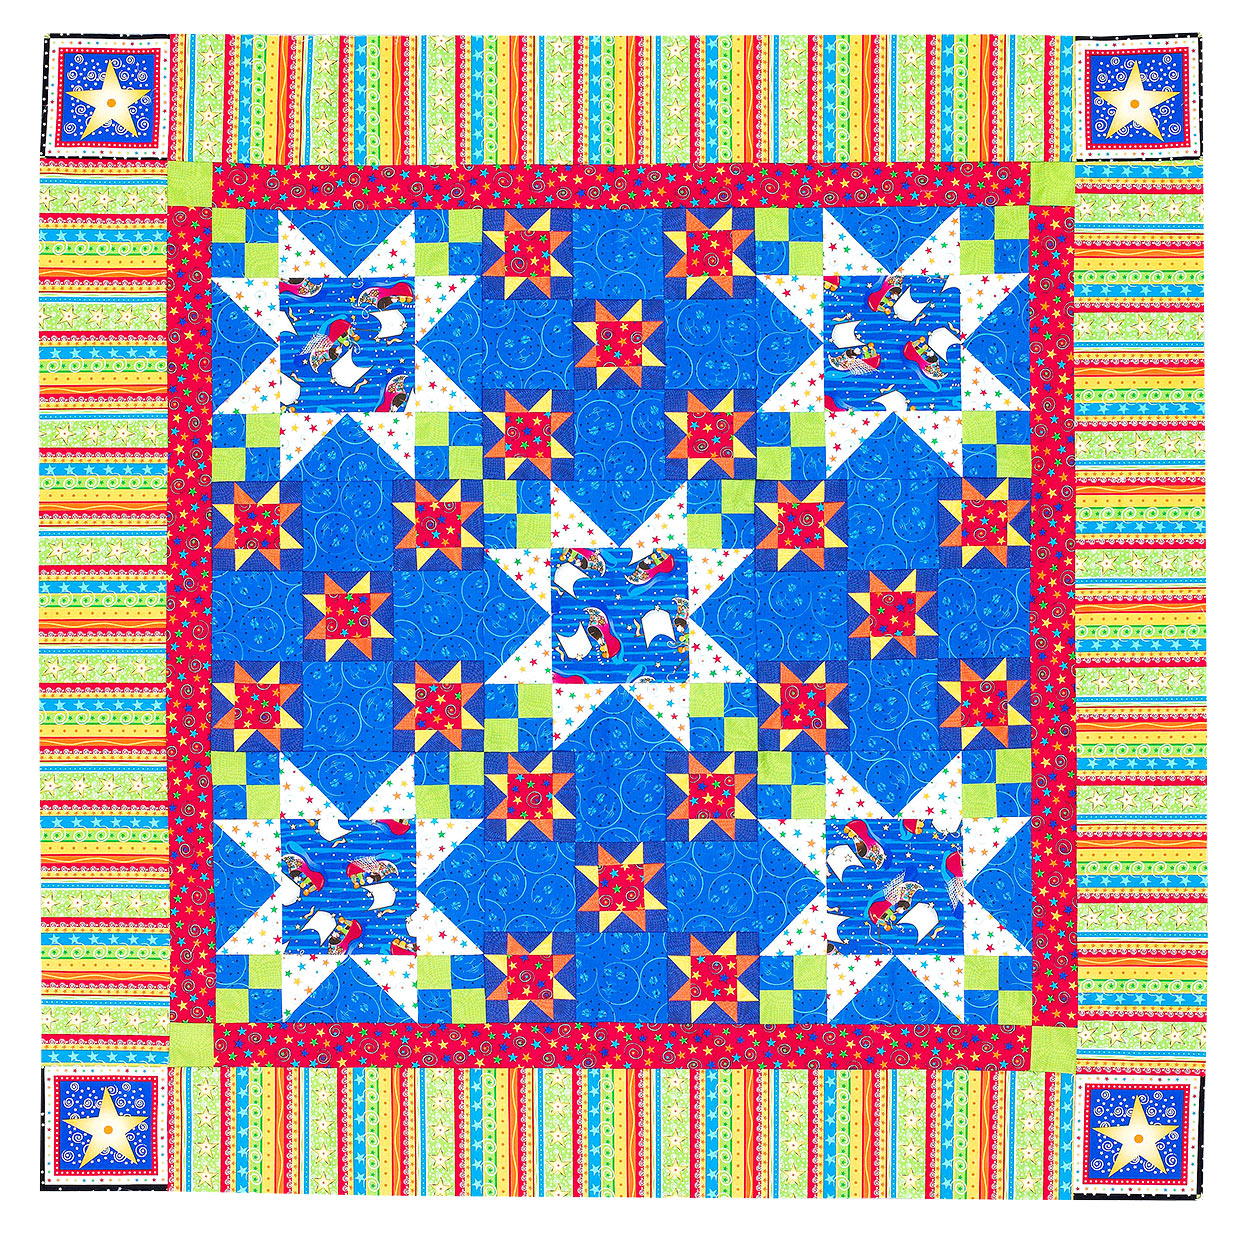 green, blue and red starry night square quilt